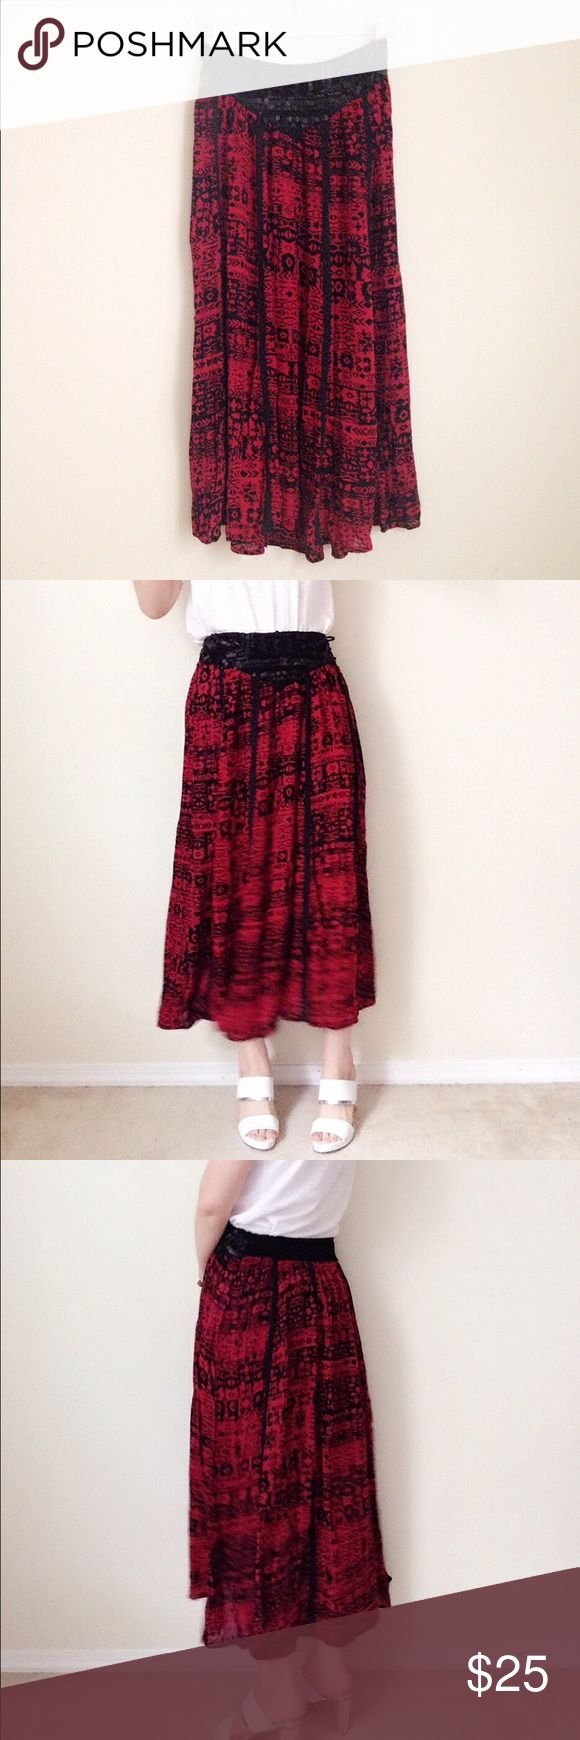 """Angie black/red soft rayon Aztec maxi skirt Thin, soft and flowy maxi skirt. Classic black and red. Unique black sequin design in front. 100%rayon. Size S, waist 12 1/4"""" (elastic band), length 34"""" (model size S, 5'5""""). Worn 1-2 times. 🚫no trade Angie Skirts Maxi"""